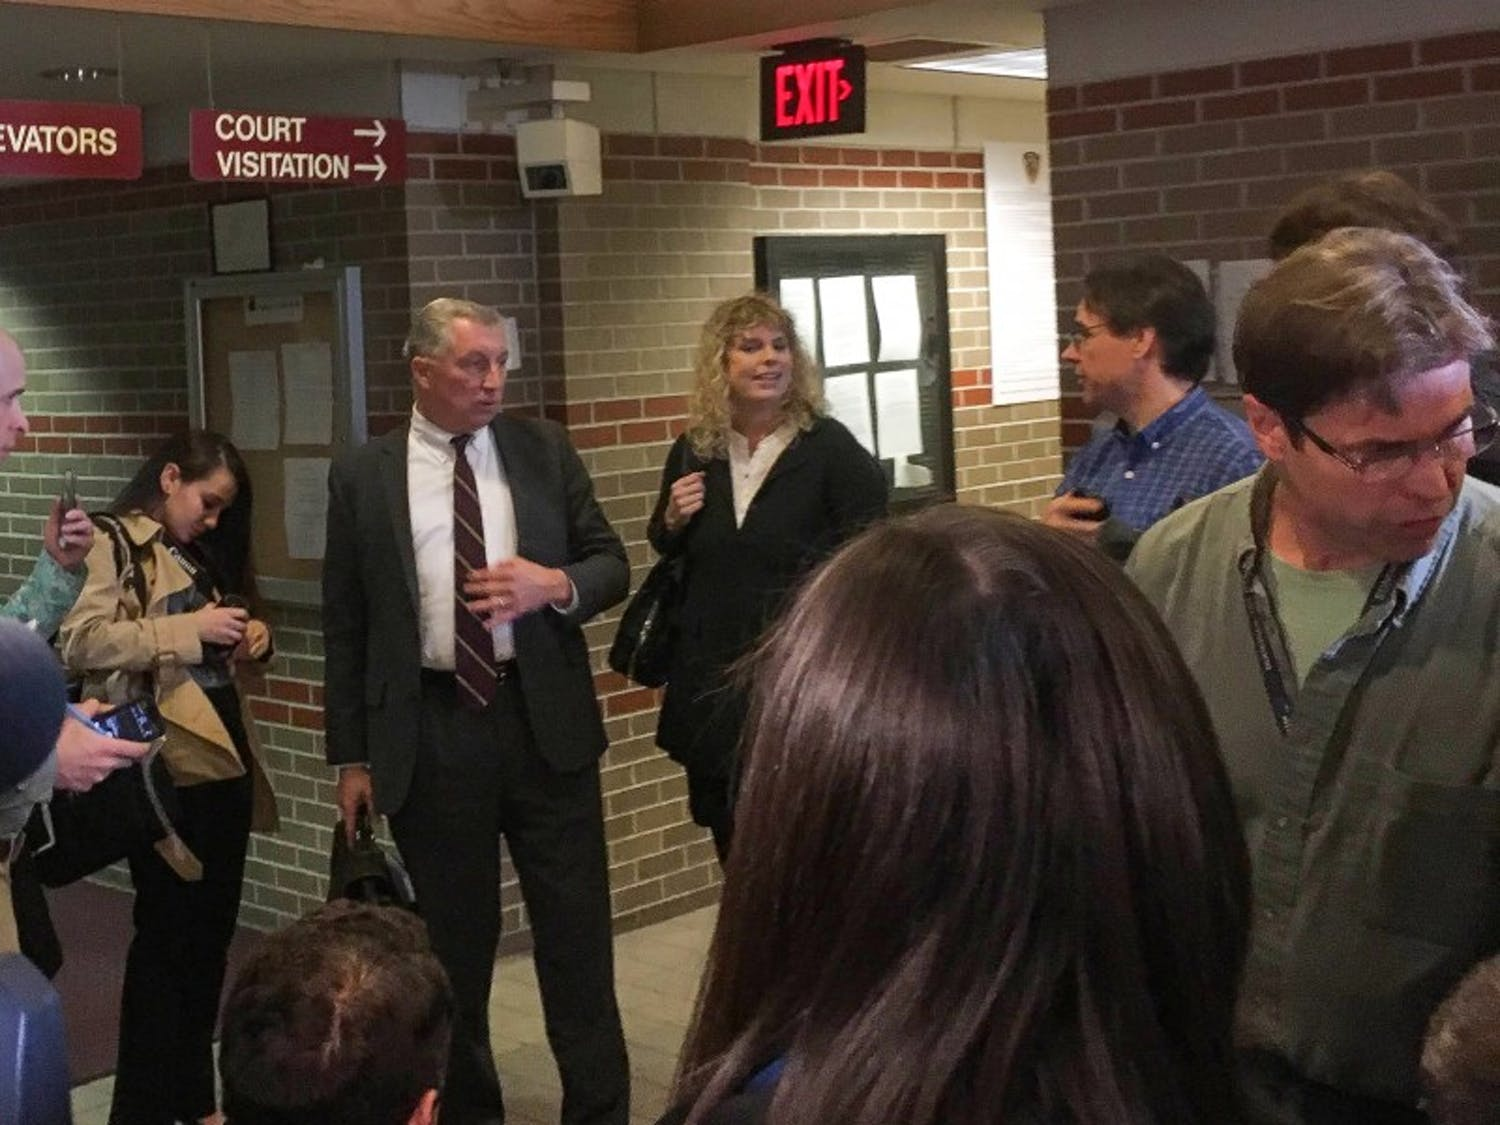 Alec Cook's lawyers, Chris Van Wagner and Jessa Nicholson Goetz, addressed media following his bail hearing Thursday.